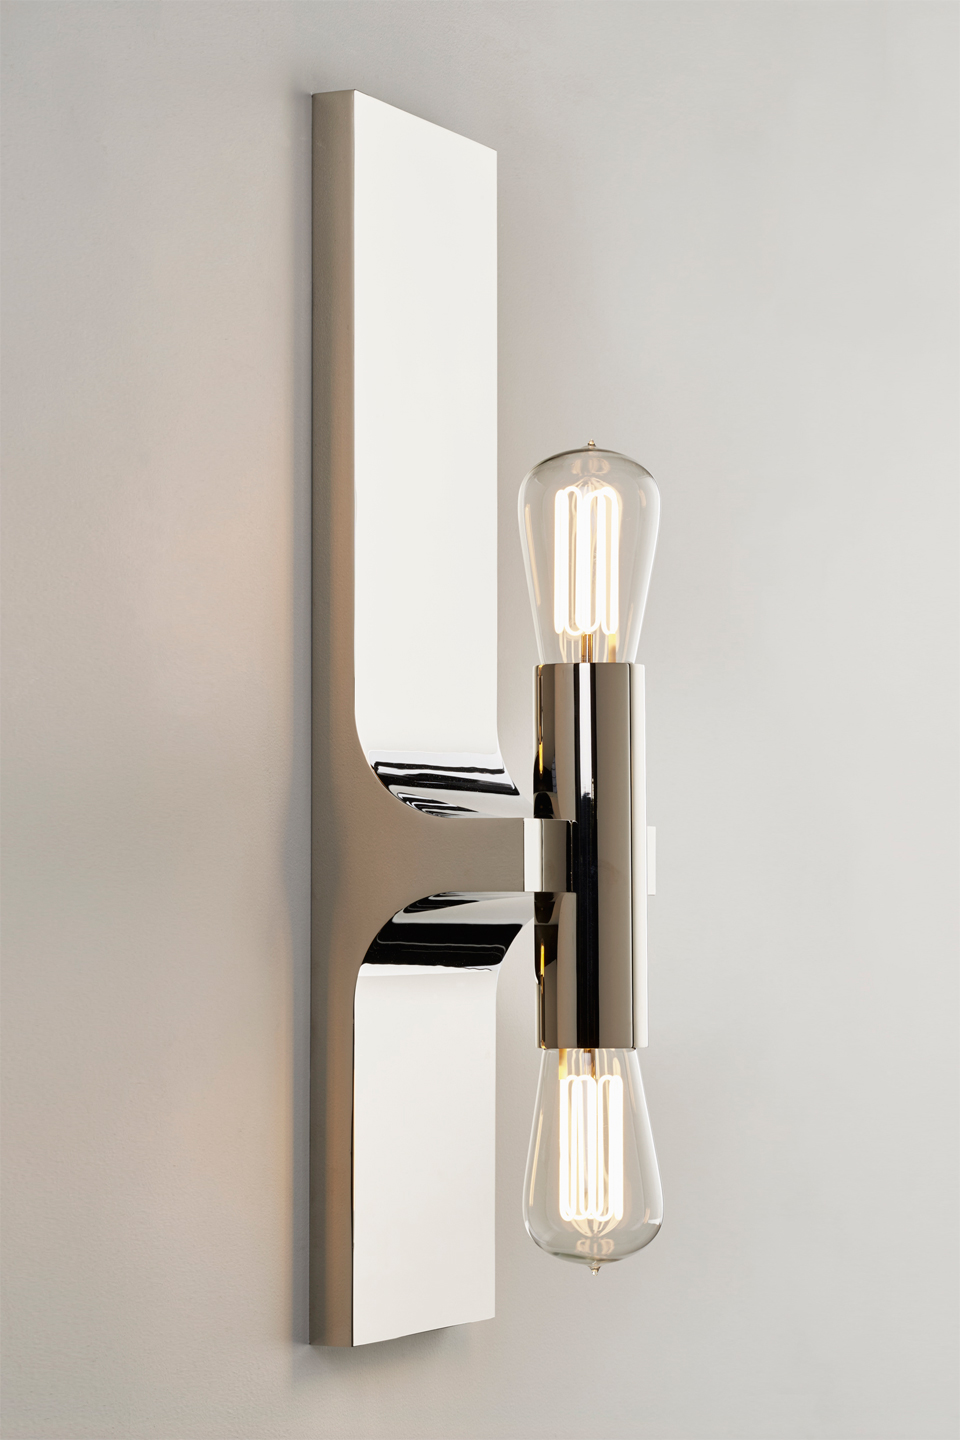 Minimalist Wall Sconce 2 Lights Exists In 1 Light